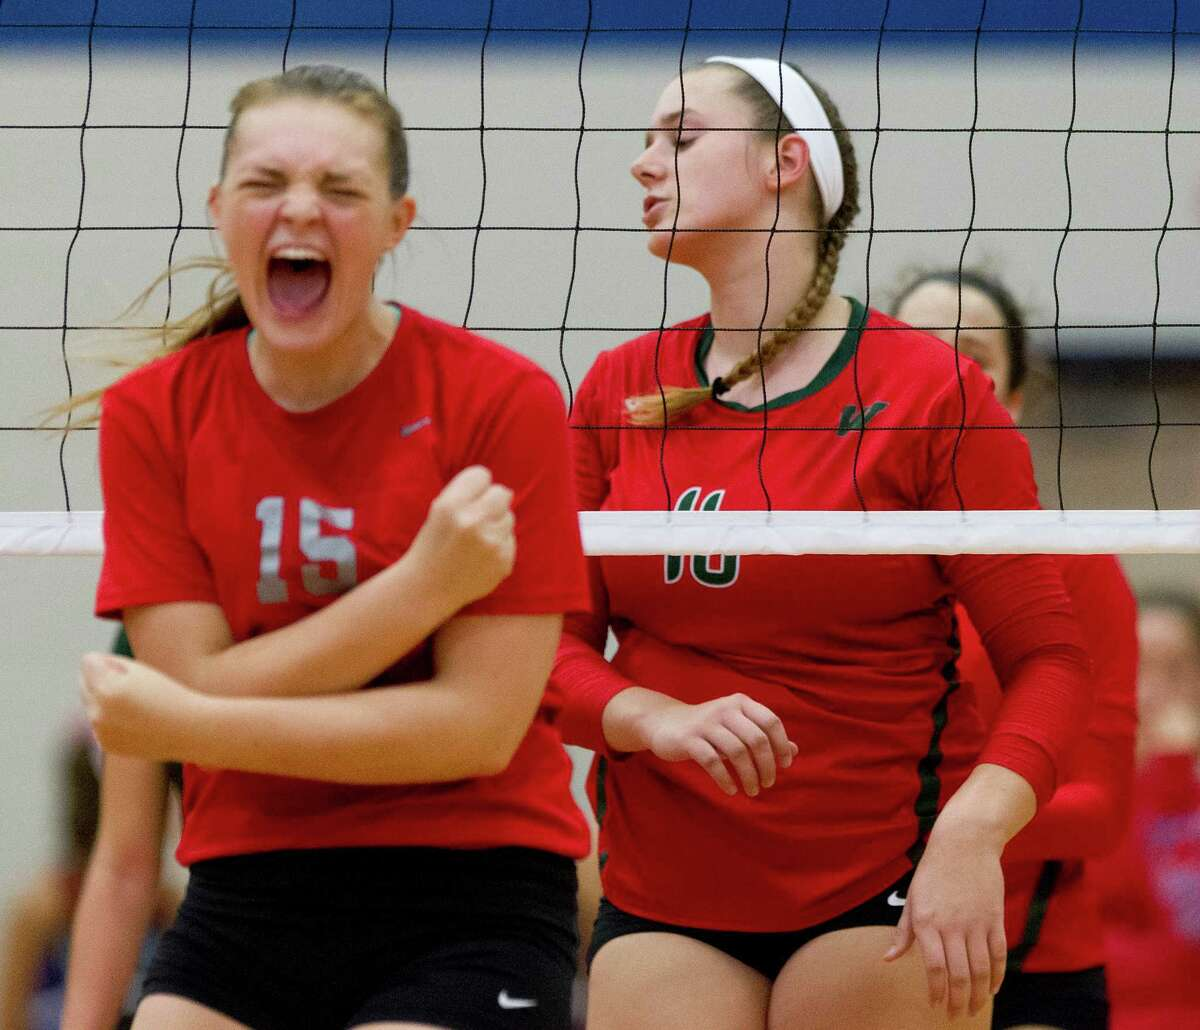 The Woodlands' AJ Koele (16) reacts after a point by Oak Ridge's Hailey Lohnes (15) on Tuesday.